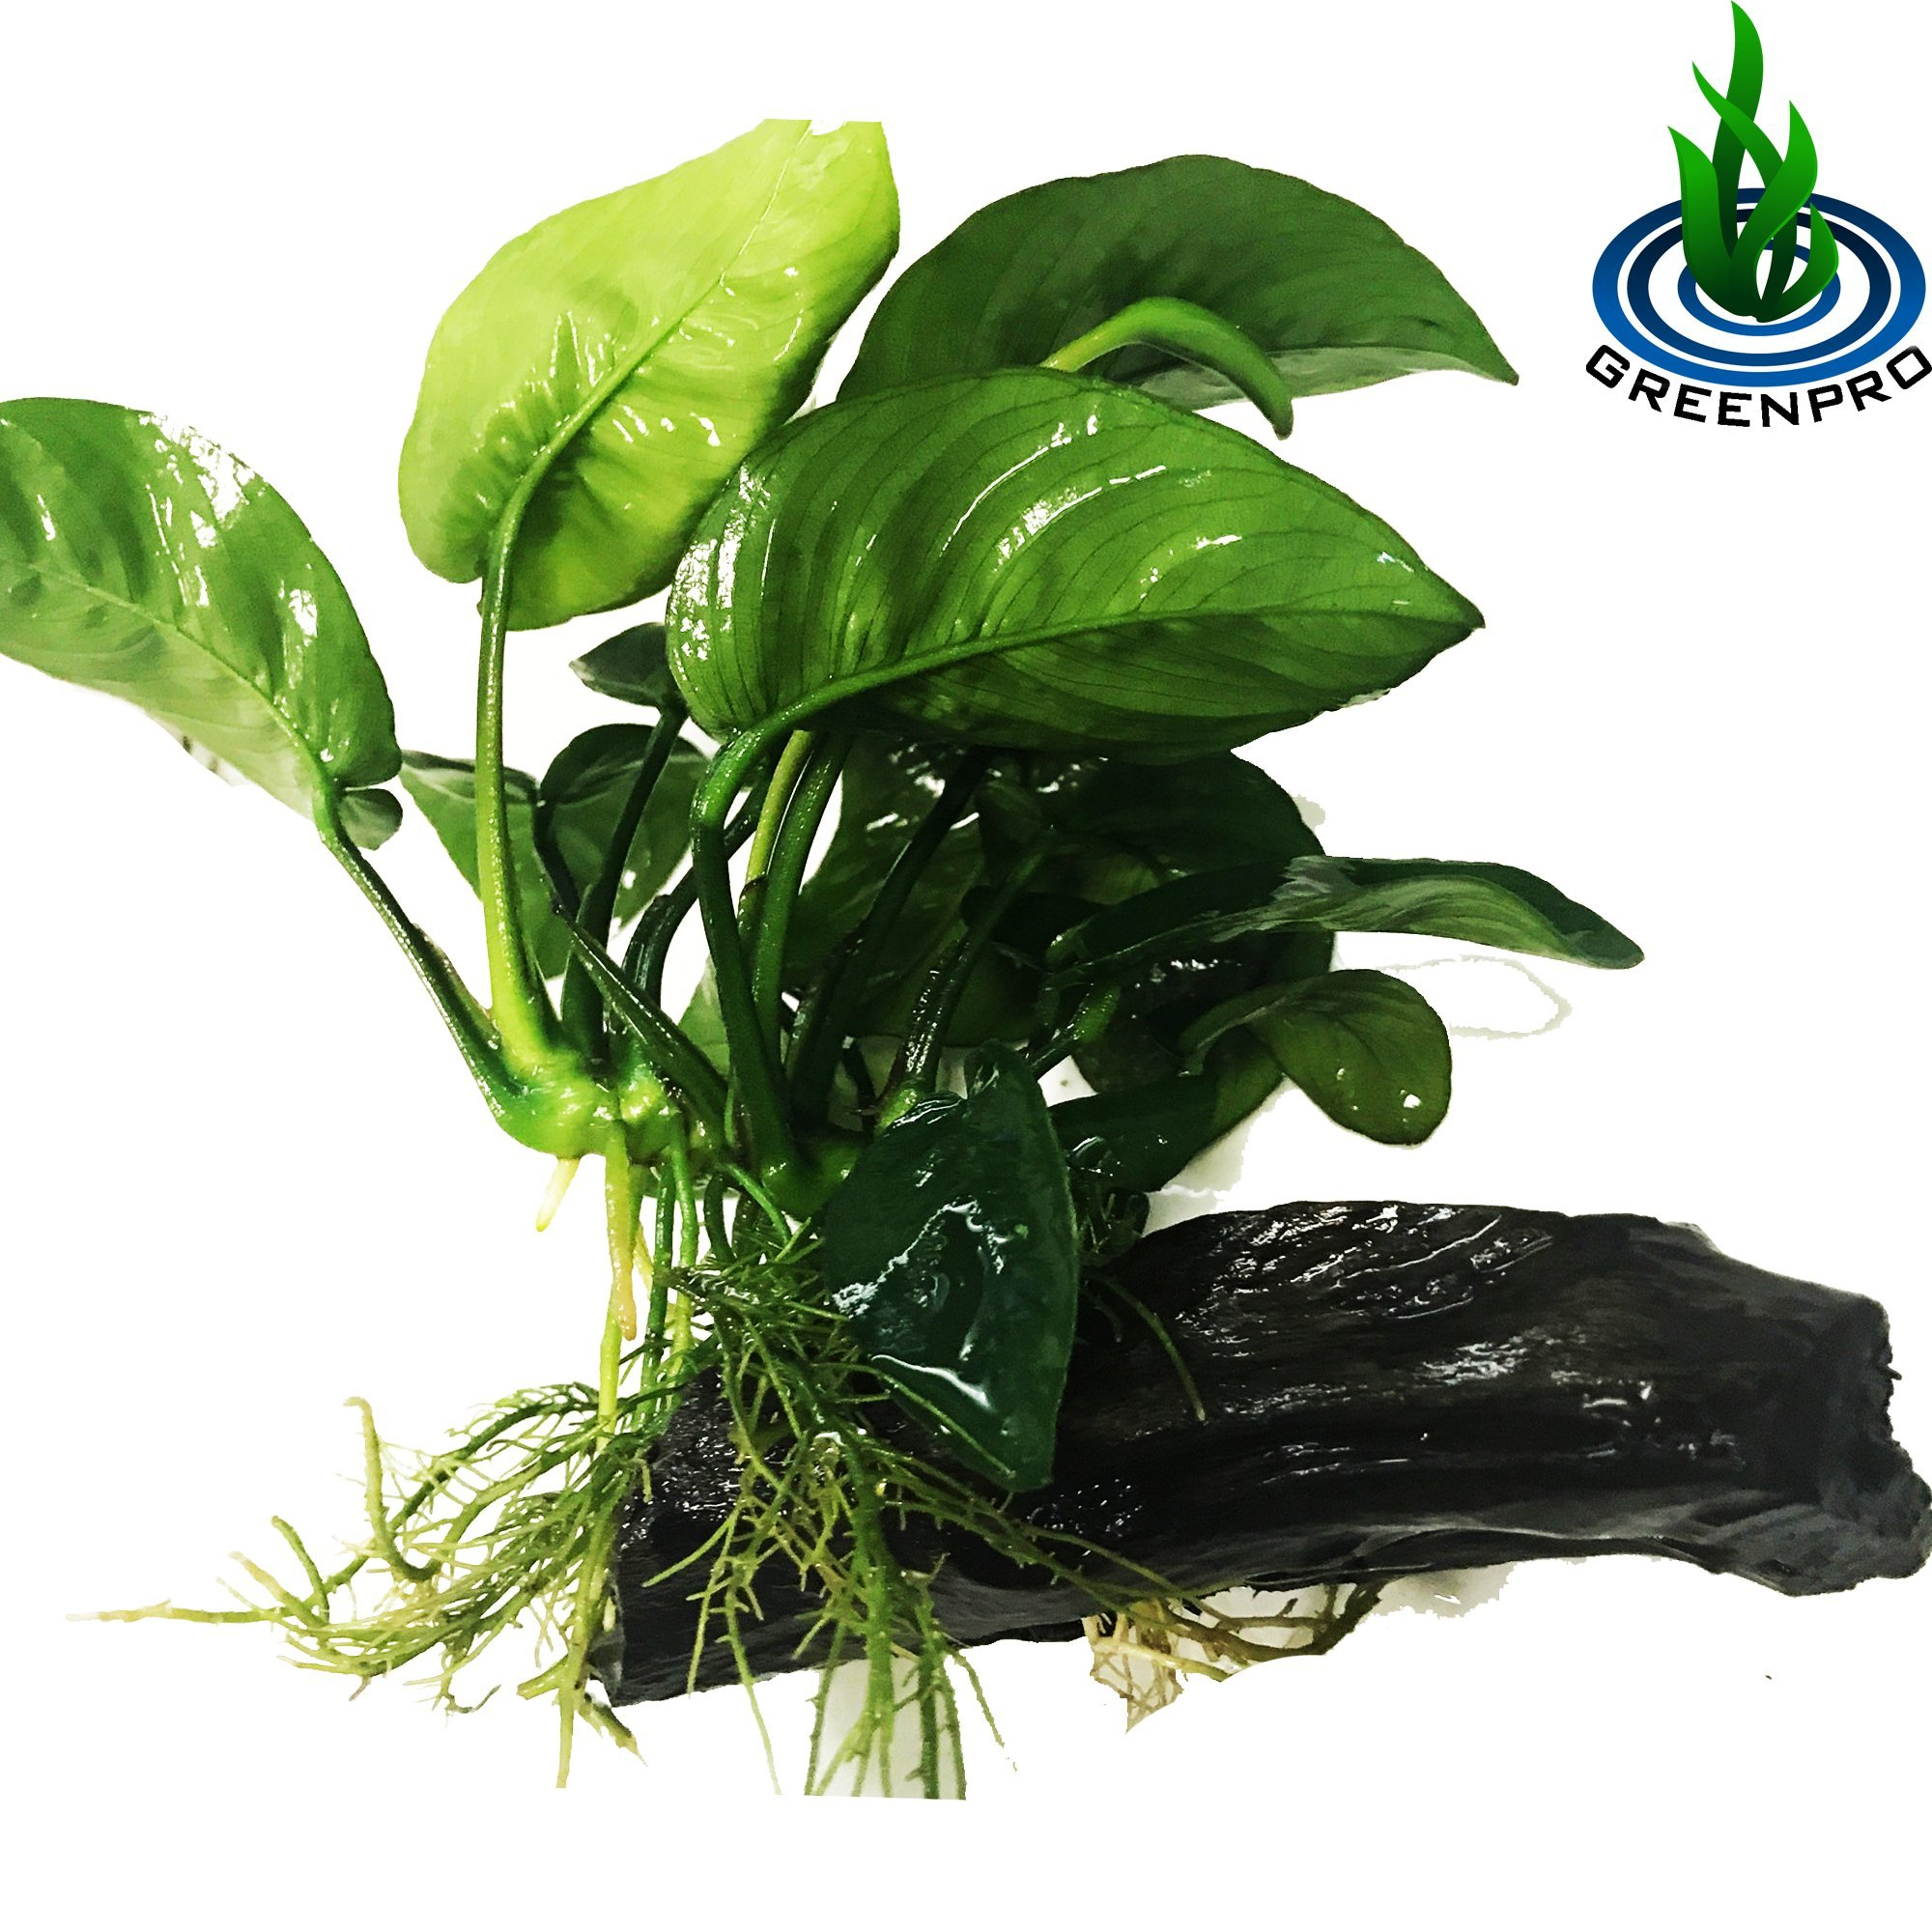 Greenpro (Anubias Barteri Butterfly) Anubias, Java Fern, Moss and More! Freshwater Live Aquarium Plants on Driftwood for Aquatic Tropical Fish Tank Decorations - Easy to Drop by Greenpro